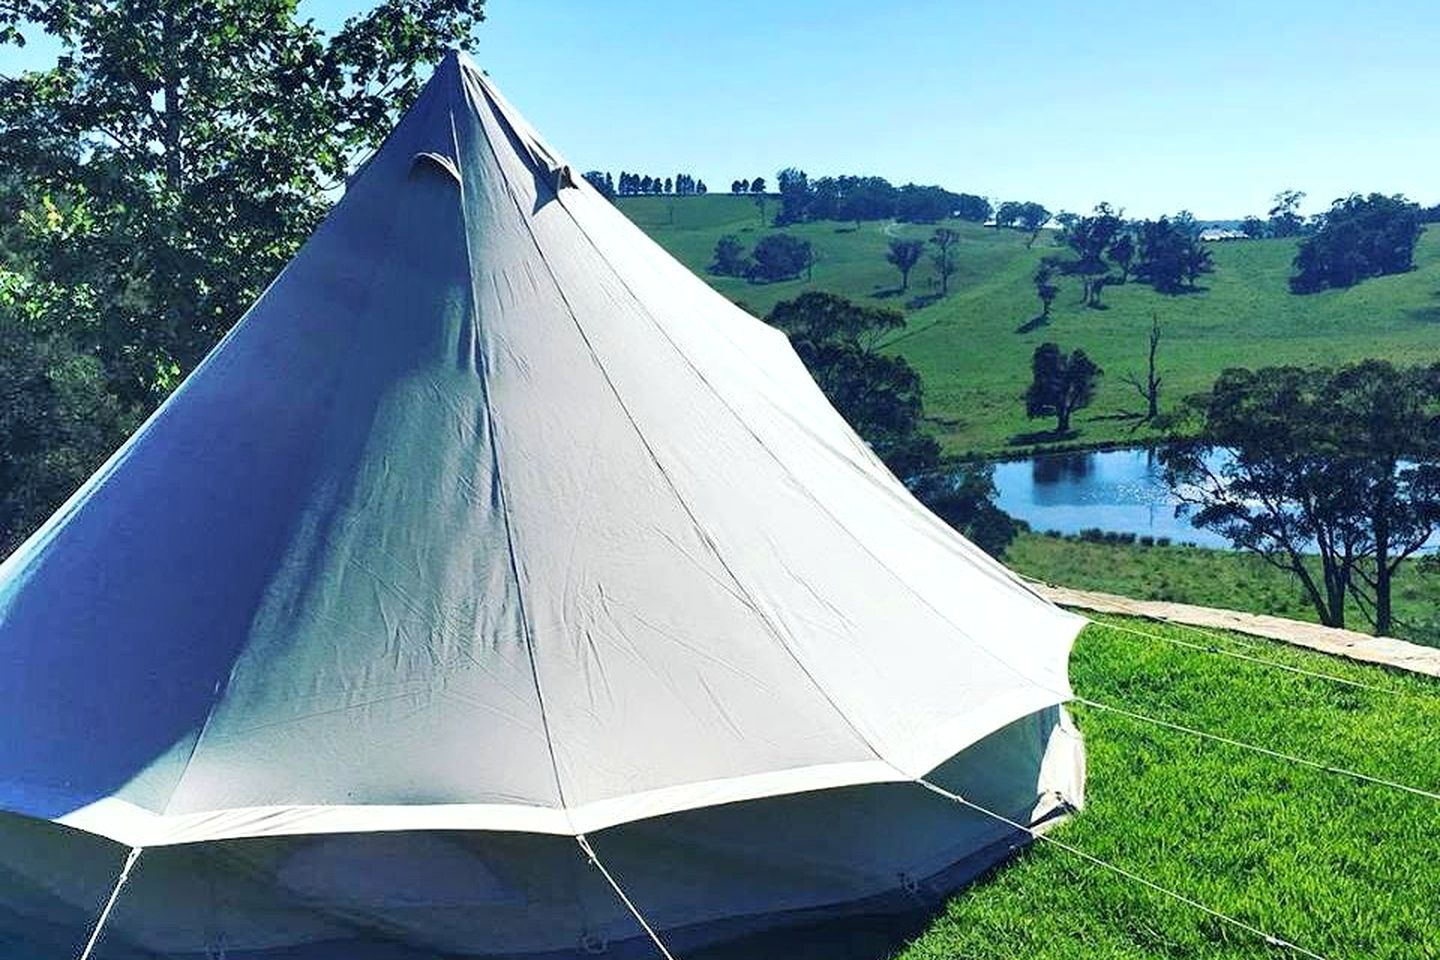 This bell tent accommodation in Exeter comes with luxury amenities and is a great weekend getaway in NSW.